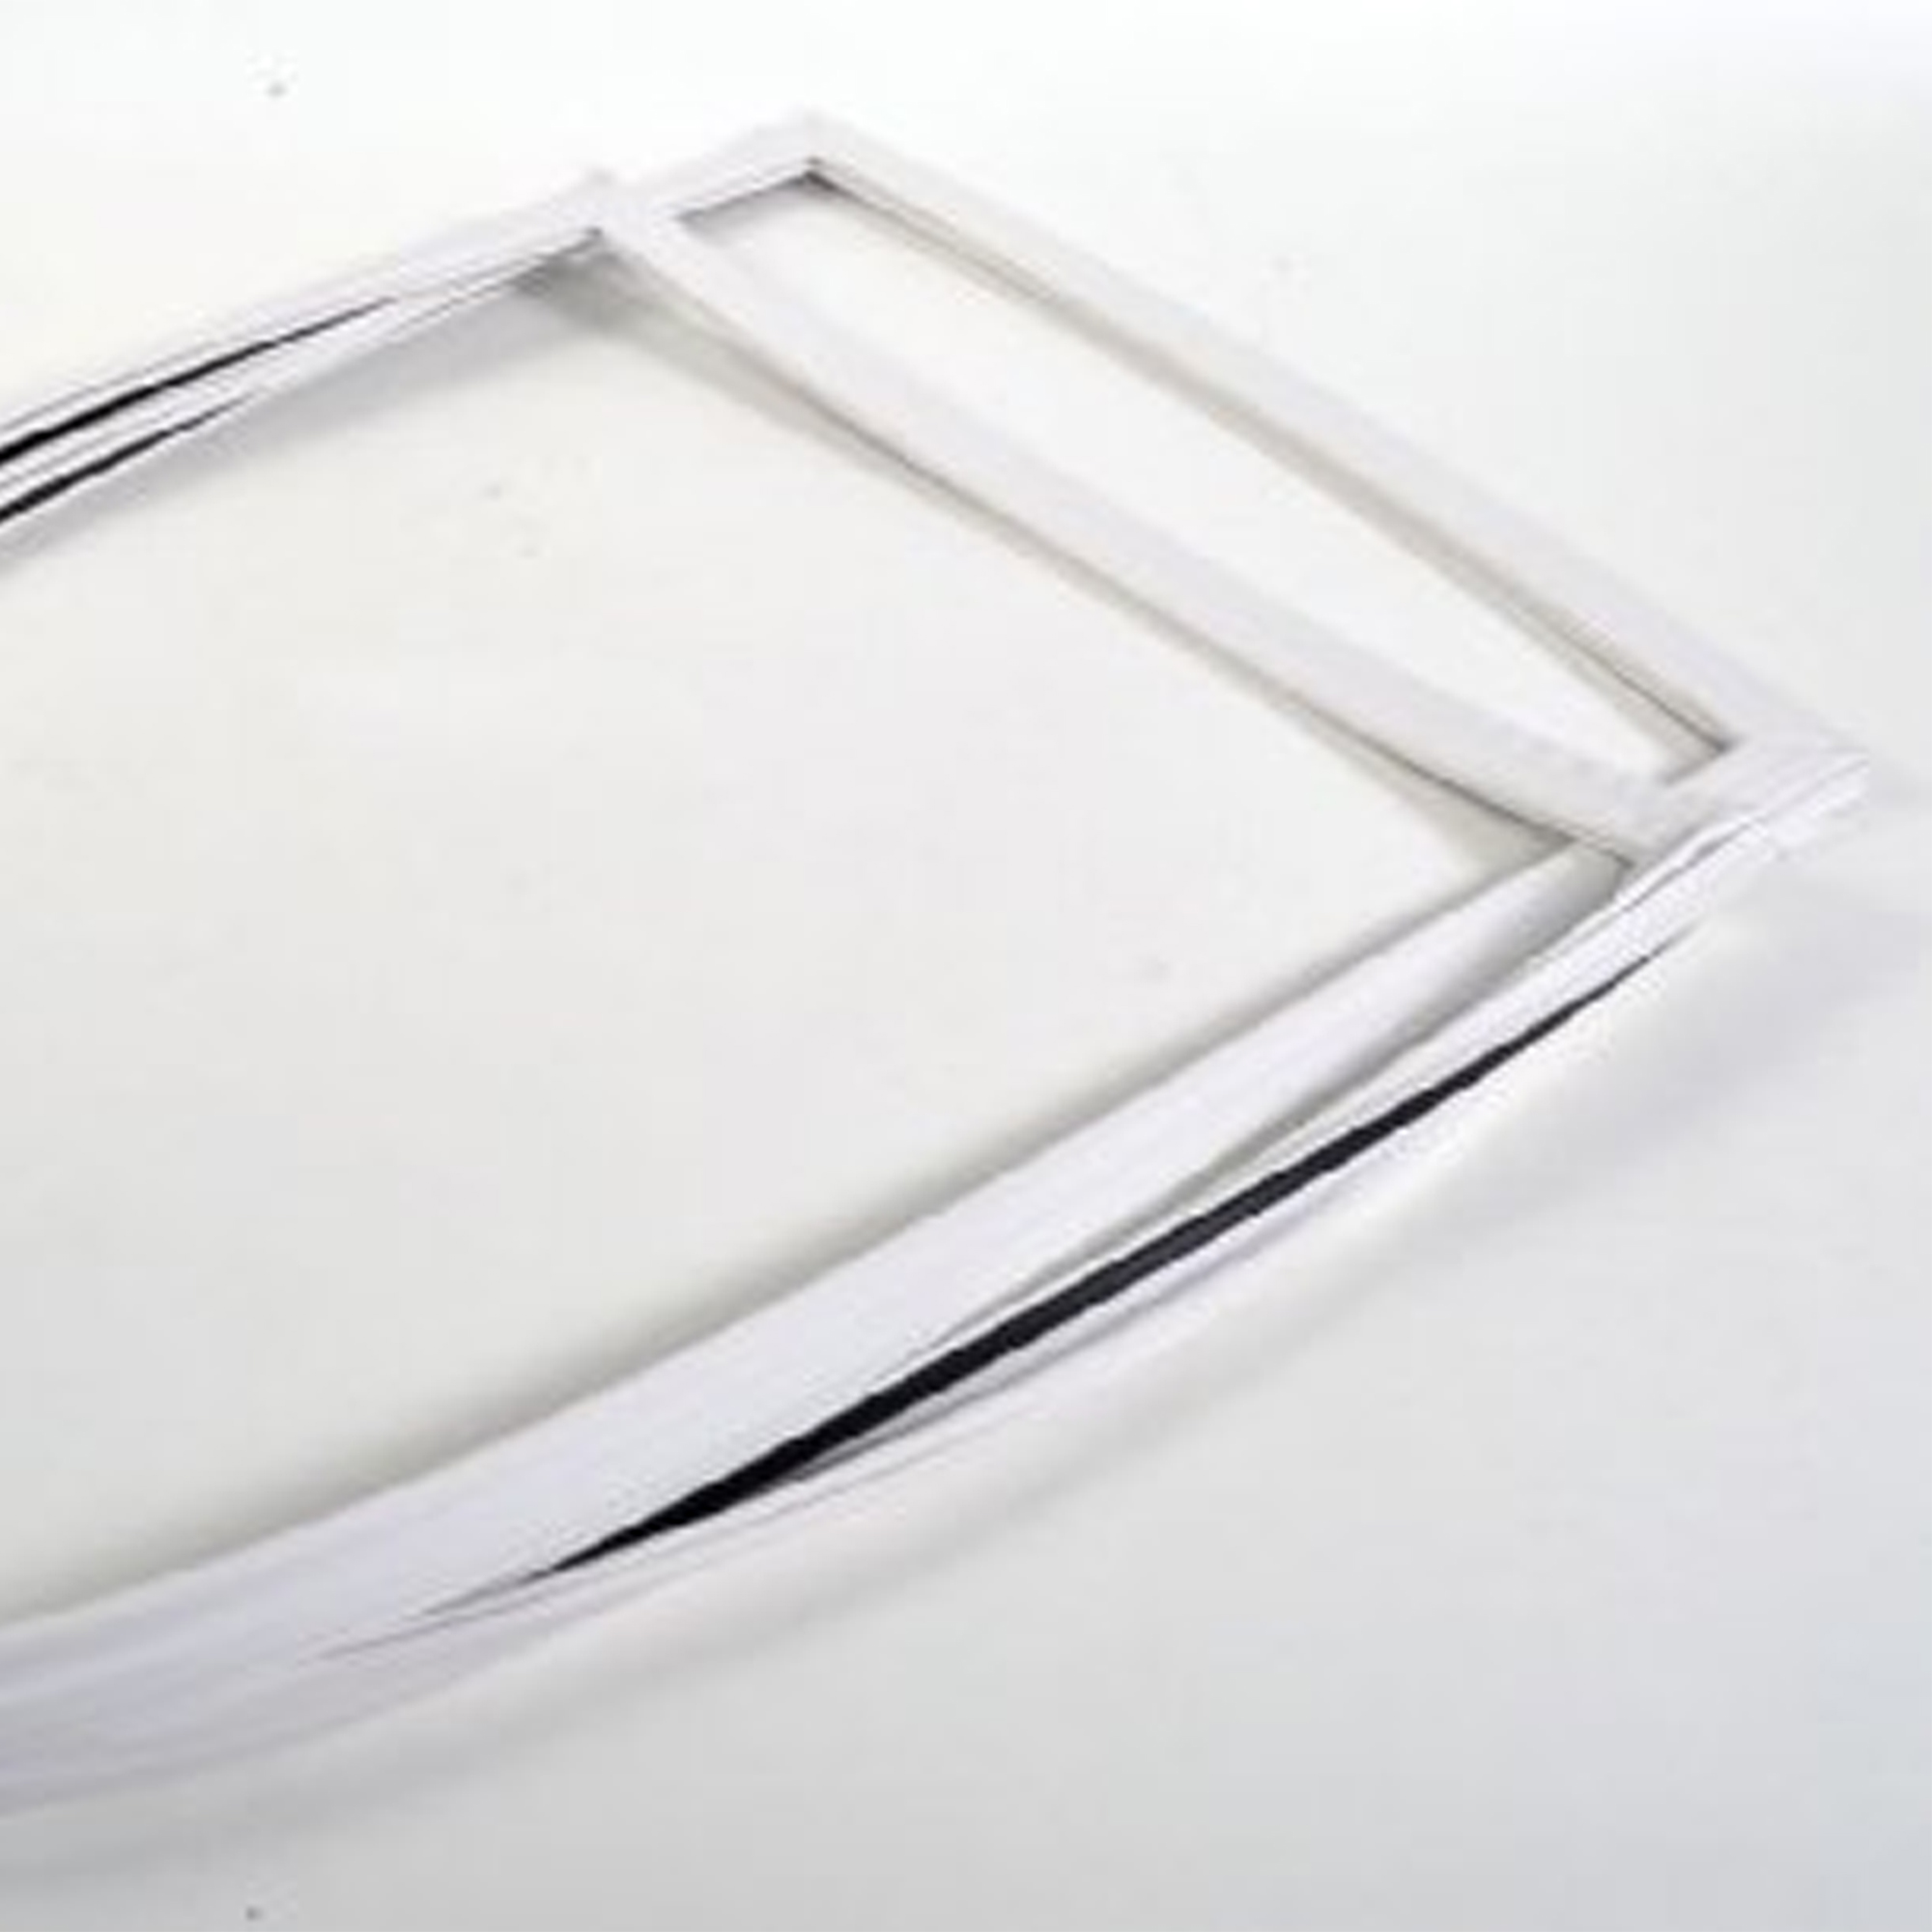 2159075 For Whirlpool Refrigerator Door Gasket